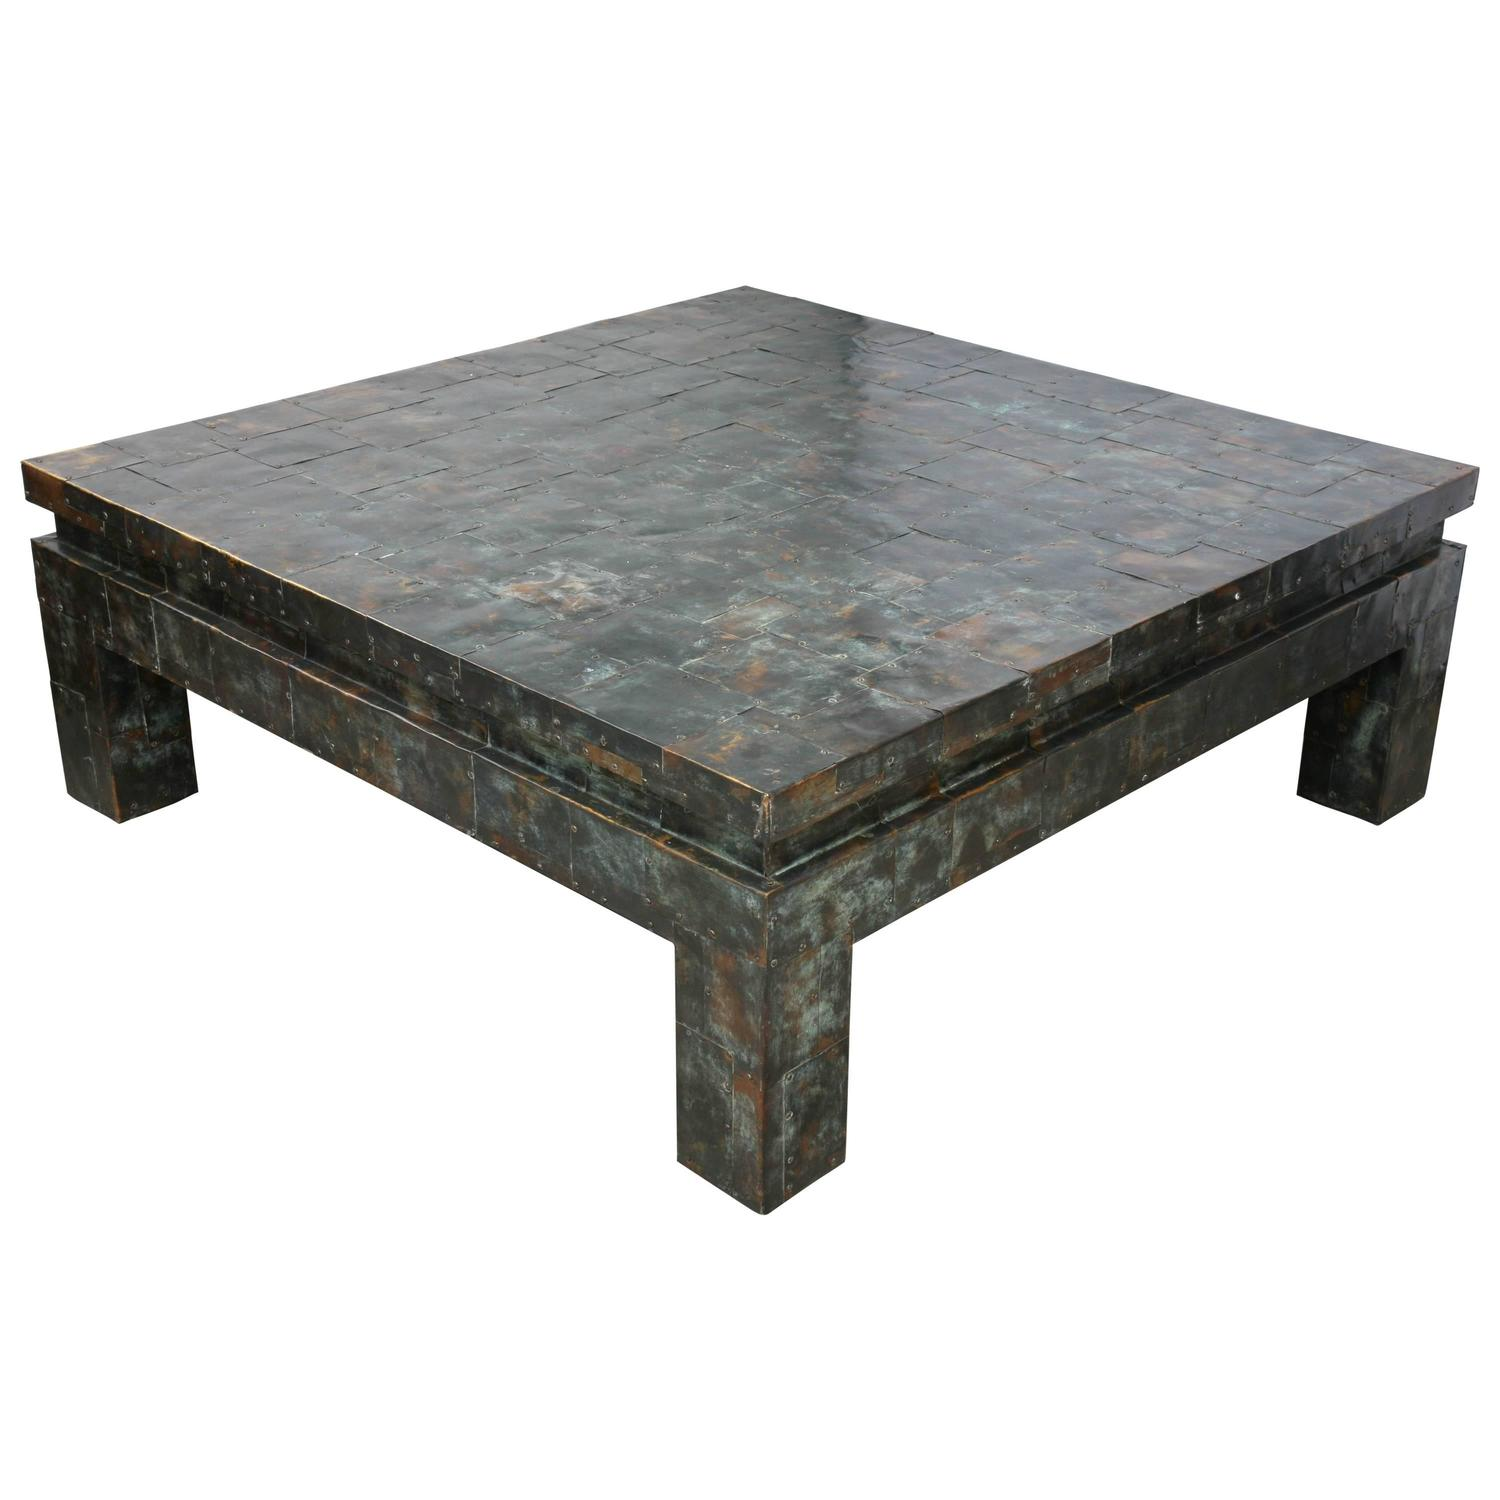 Habitat Herrmann Square Glass Coffee Table: Large-Scale, Paul Evans Style, Anodized-Brass, Brutalist